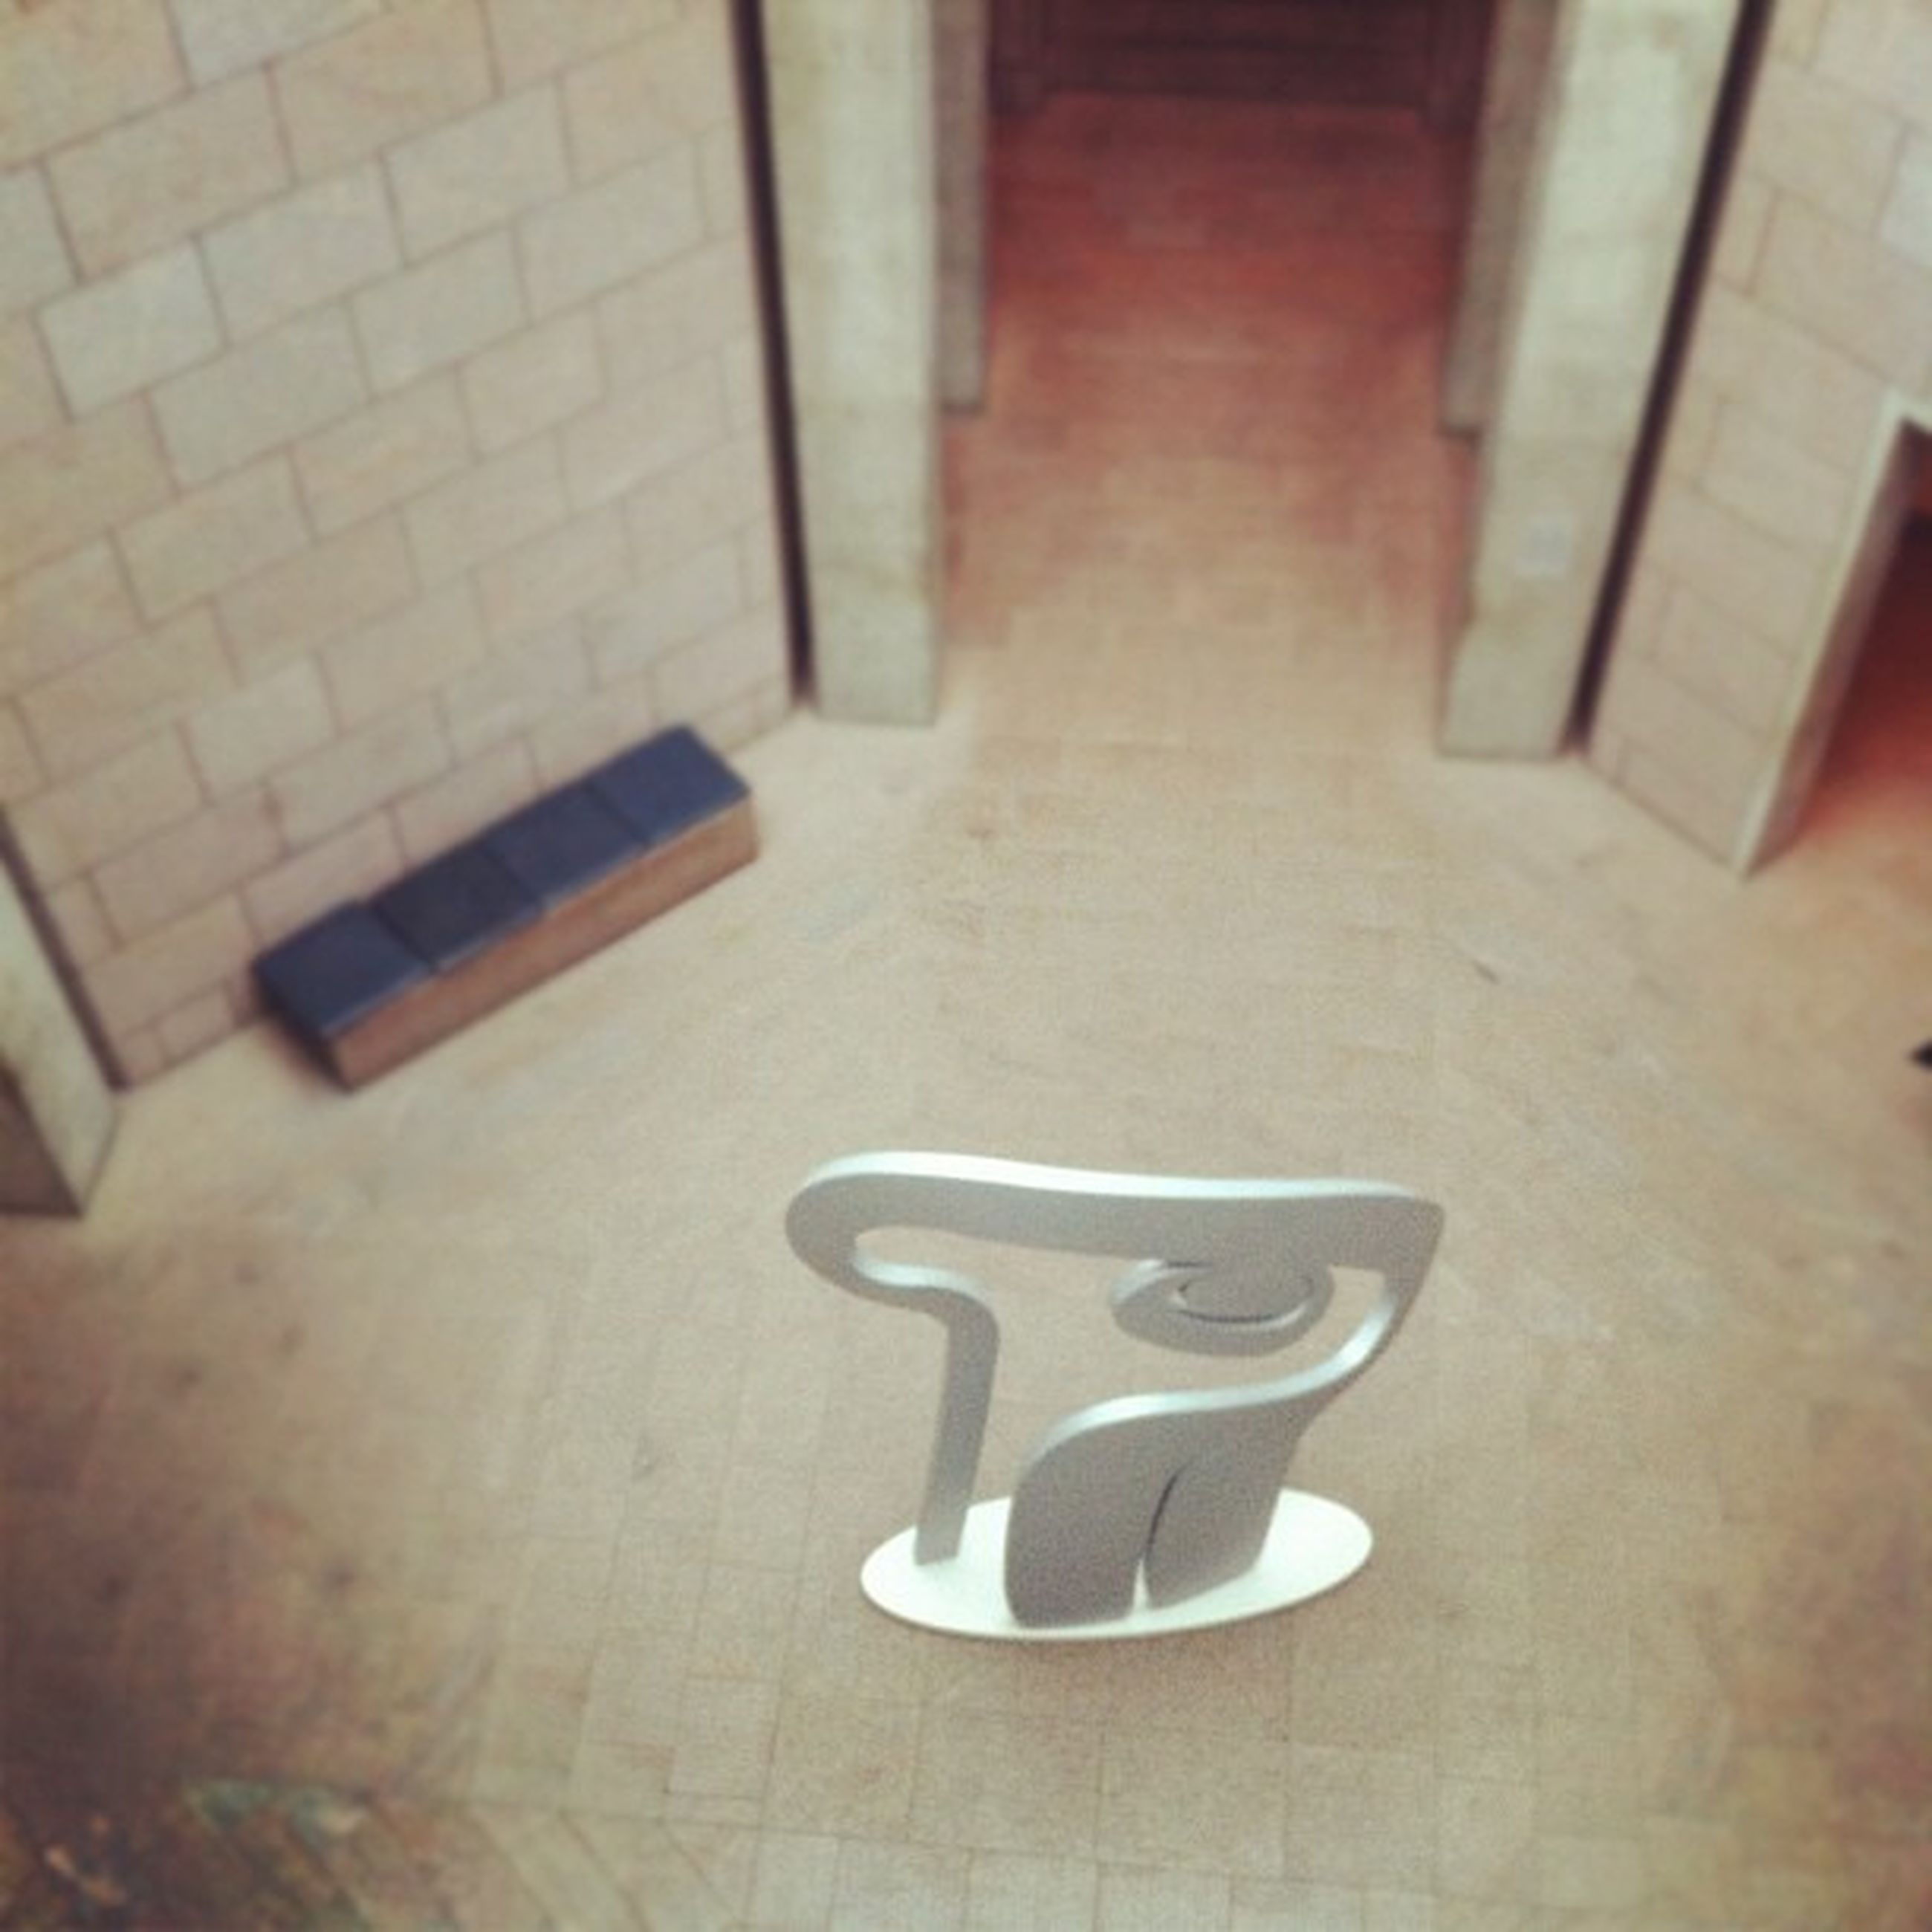 indoors, absence, flooring, wall - building feature, empty, table, still life, no people, high angle view, home interior, chair, architecture, tiled floor, door, built structure, wood - material, wall, tile, floor, domestic room